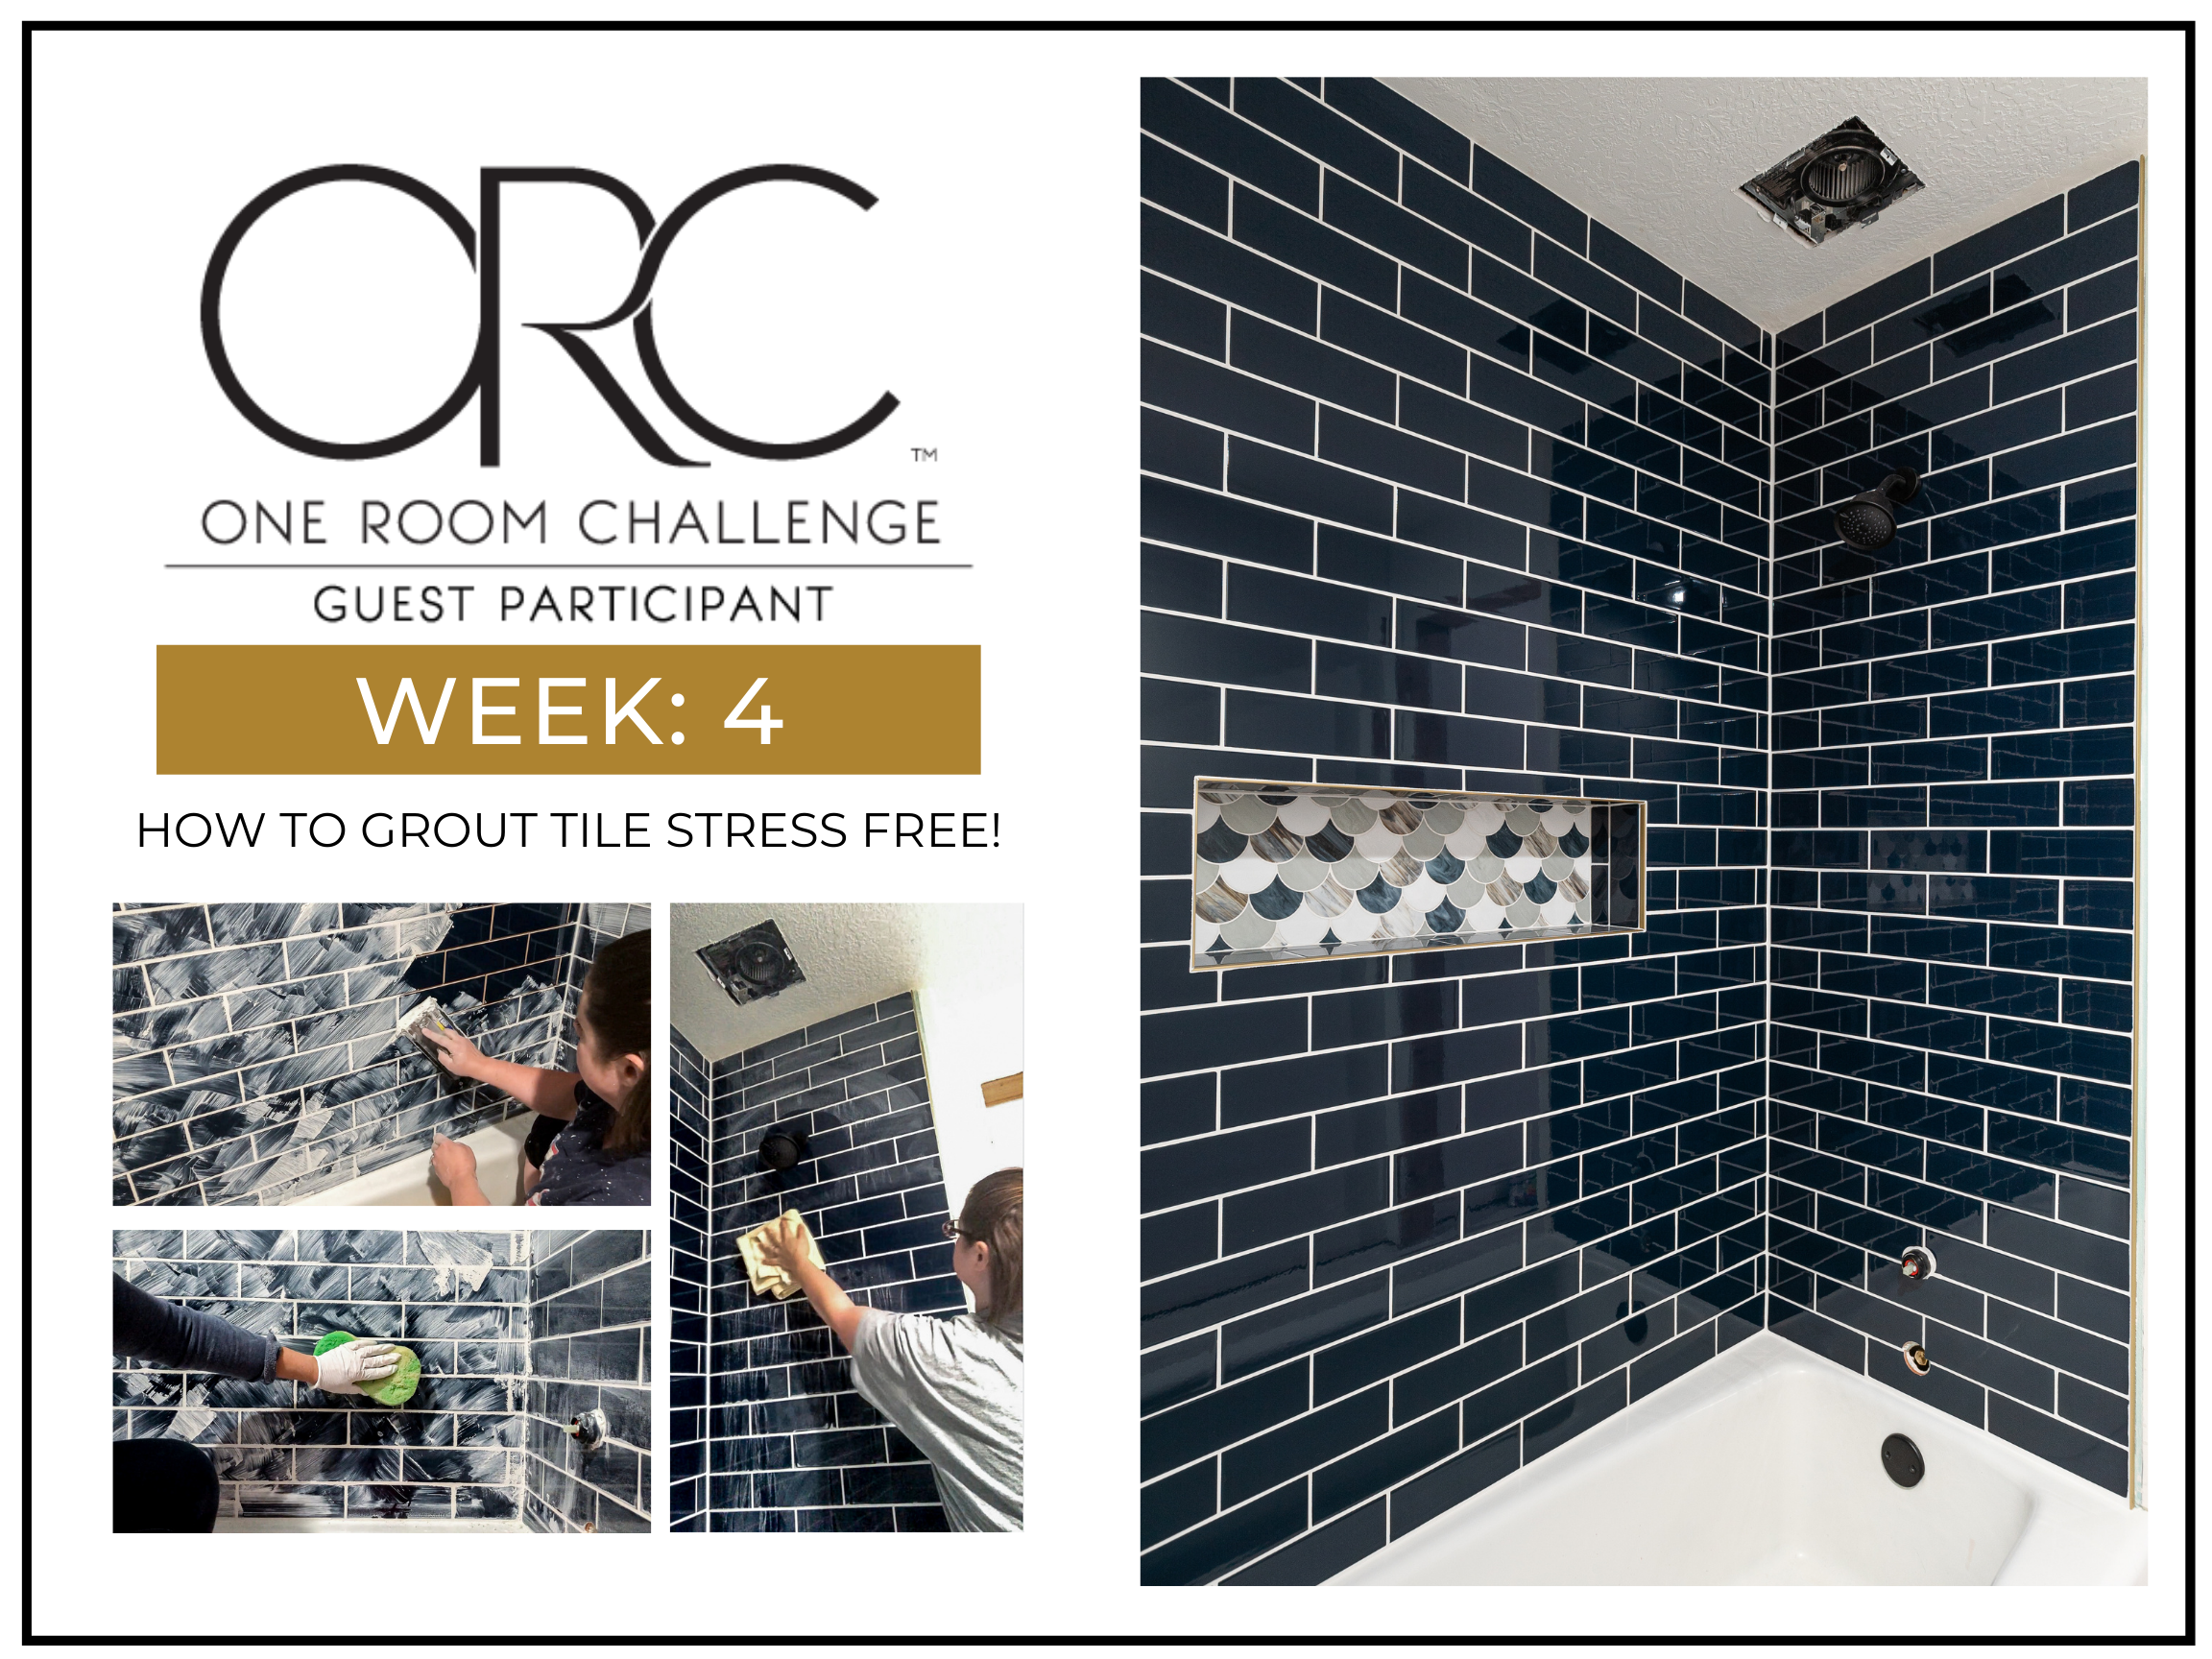 How To Grout Tile Stress Free | What You Need To Know